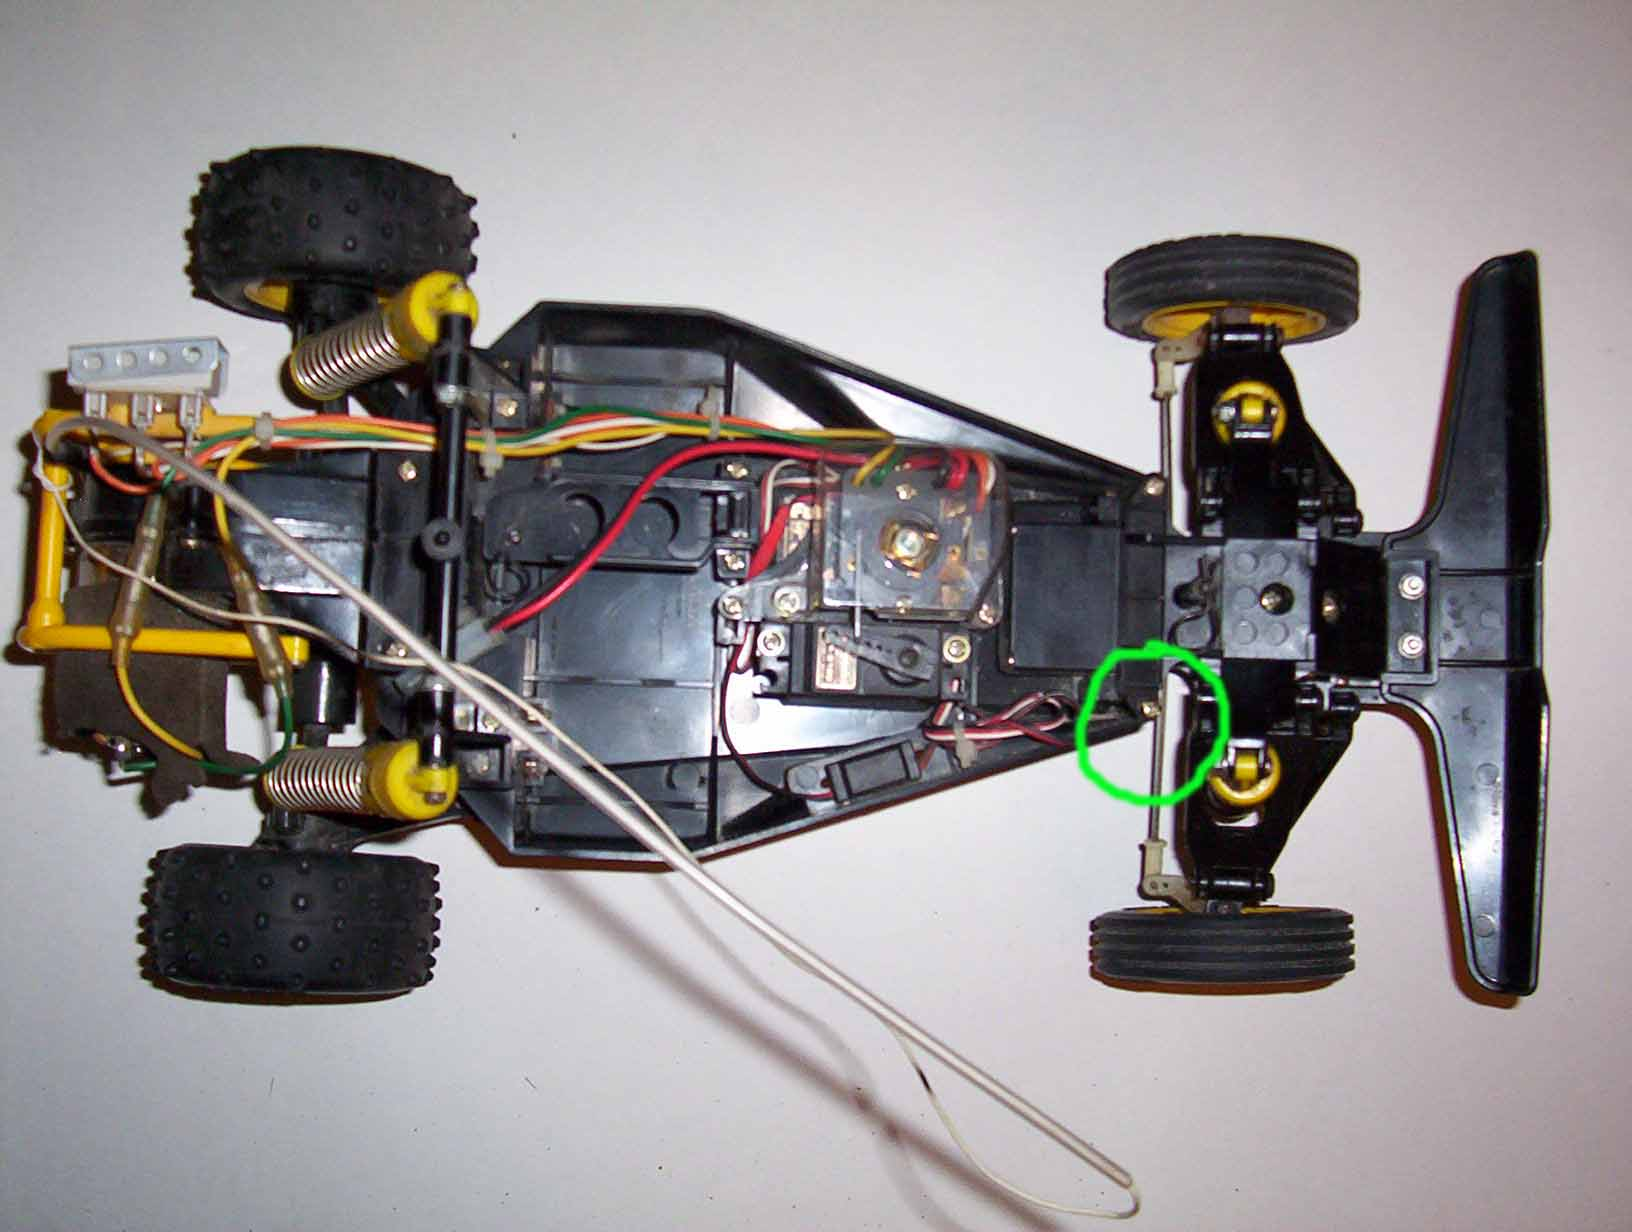 100 rc car with 271701 Tamiya Falcon on 27612 Overflod Entity Xf in addition 2016 Lexus Lc Coupe To Malaysia 1 furthermore Tamiya Hor  1984 together with 1141247685 100 1037 further The Dragon Slayer Shannon C bells Latest Race Creation.